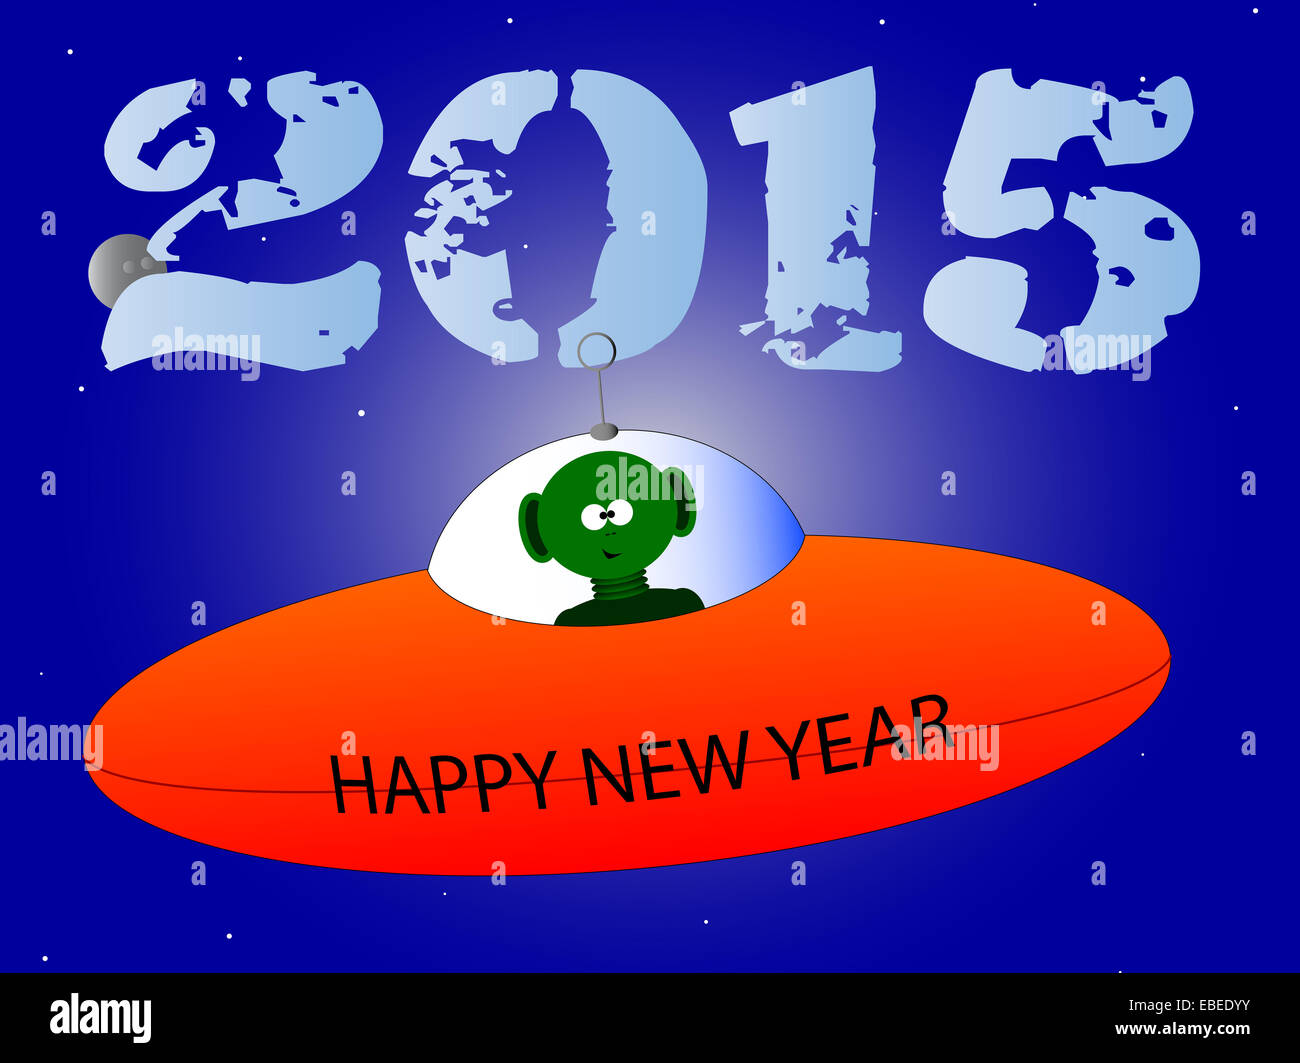 a happy new years message from a flying saucer and alien